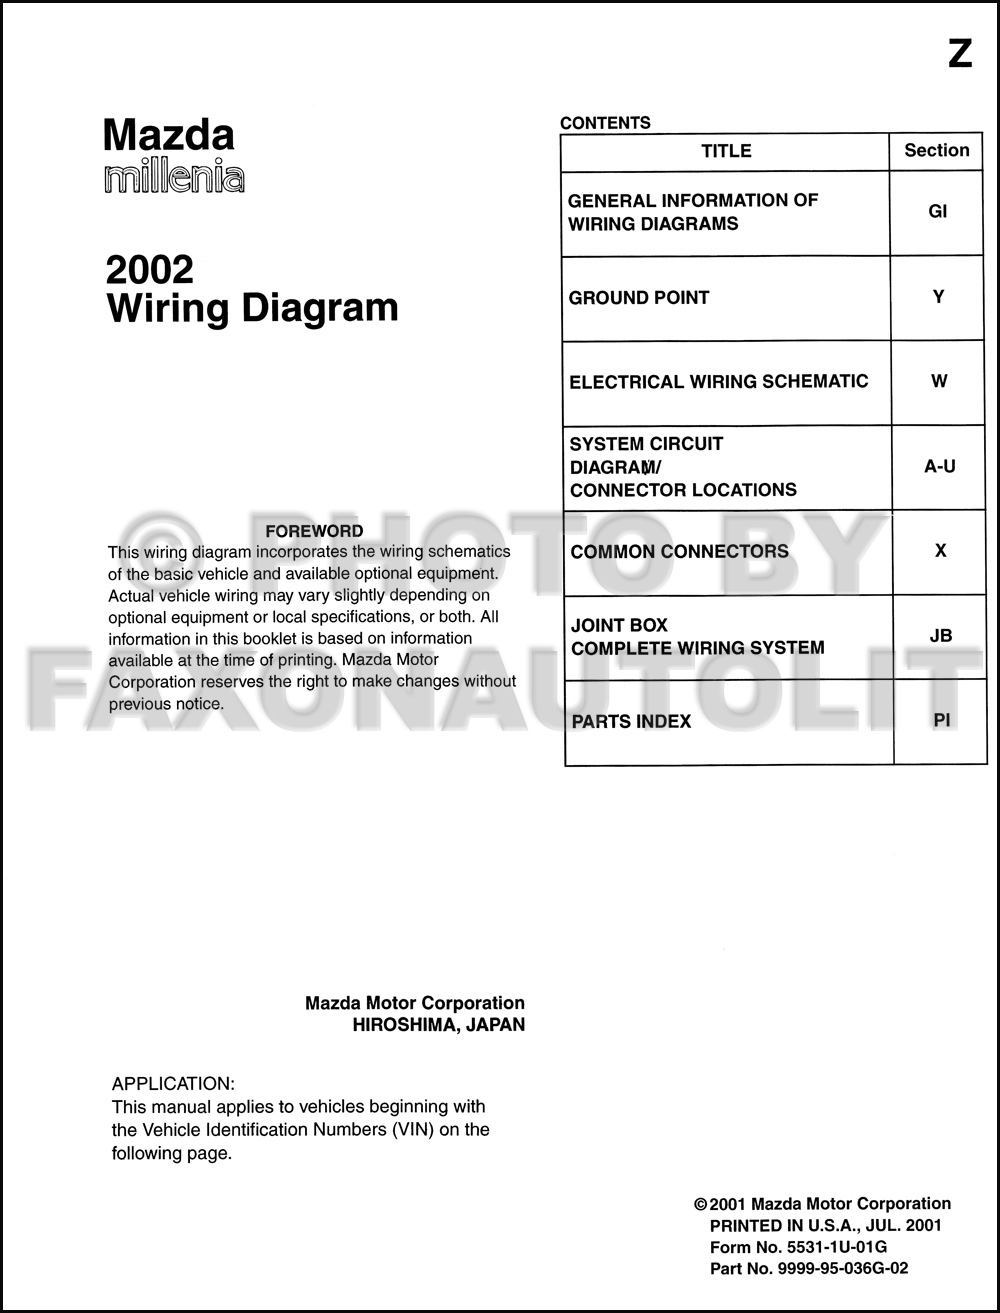 2002 Mazda Millenia Wiring Diagram Manual Original. click on thumbnail to  zoom